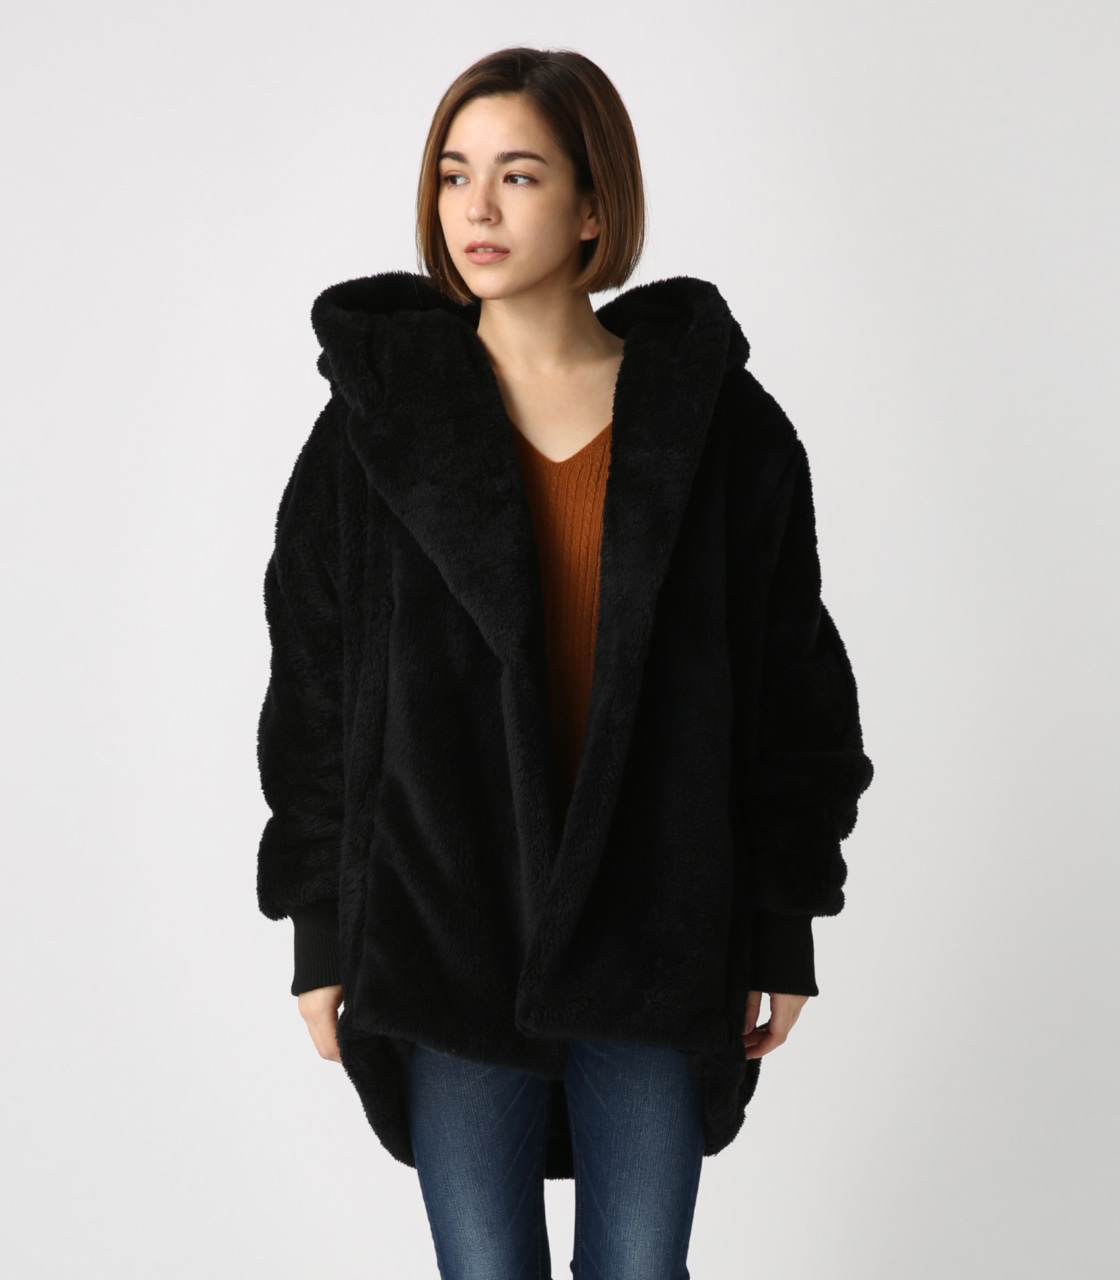 【AZUL BY MOUSSY】ボアショールカラーロングコート【MOOK44掲載 99031】 詳細画像 BLK 5